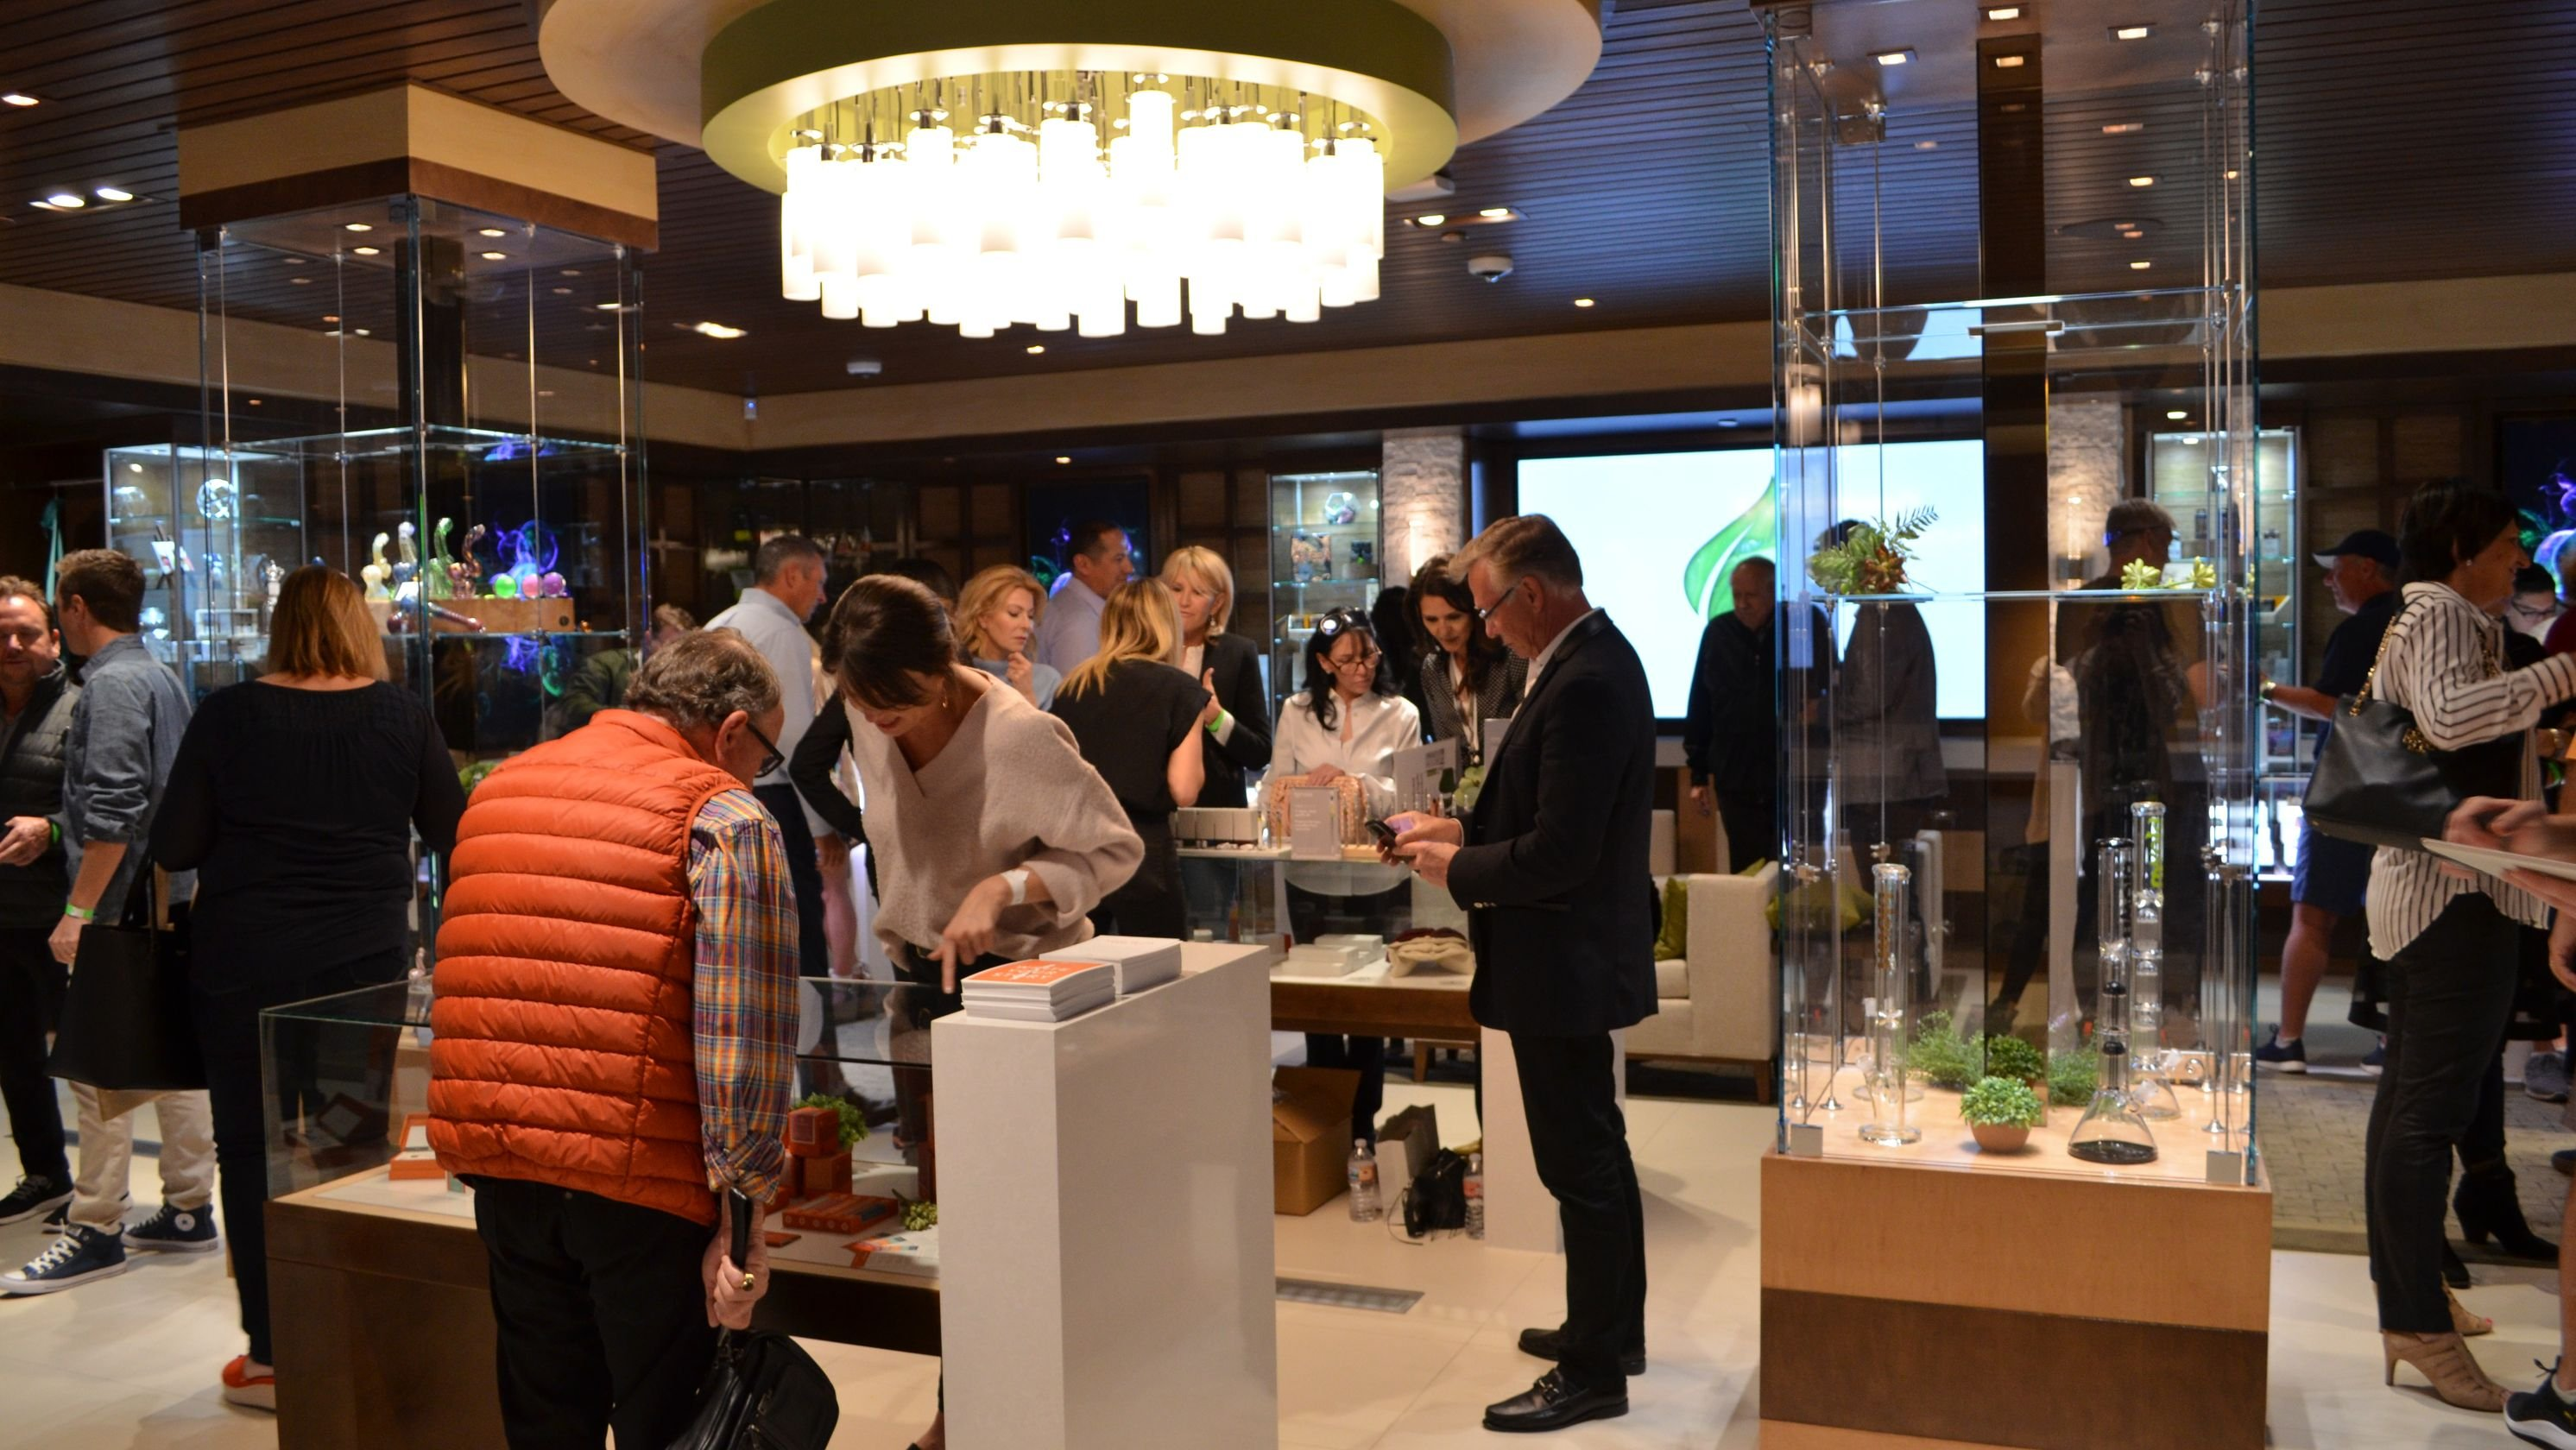 A pot shop opened in a posh California shopping district. Can it attract country club-goers?